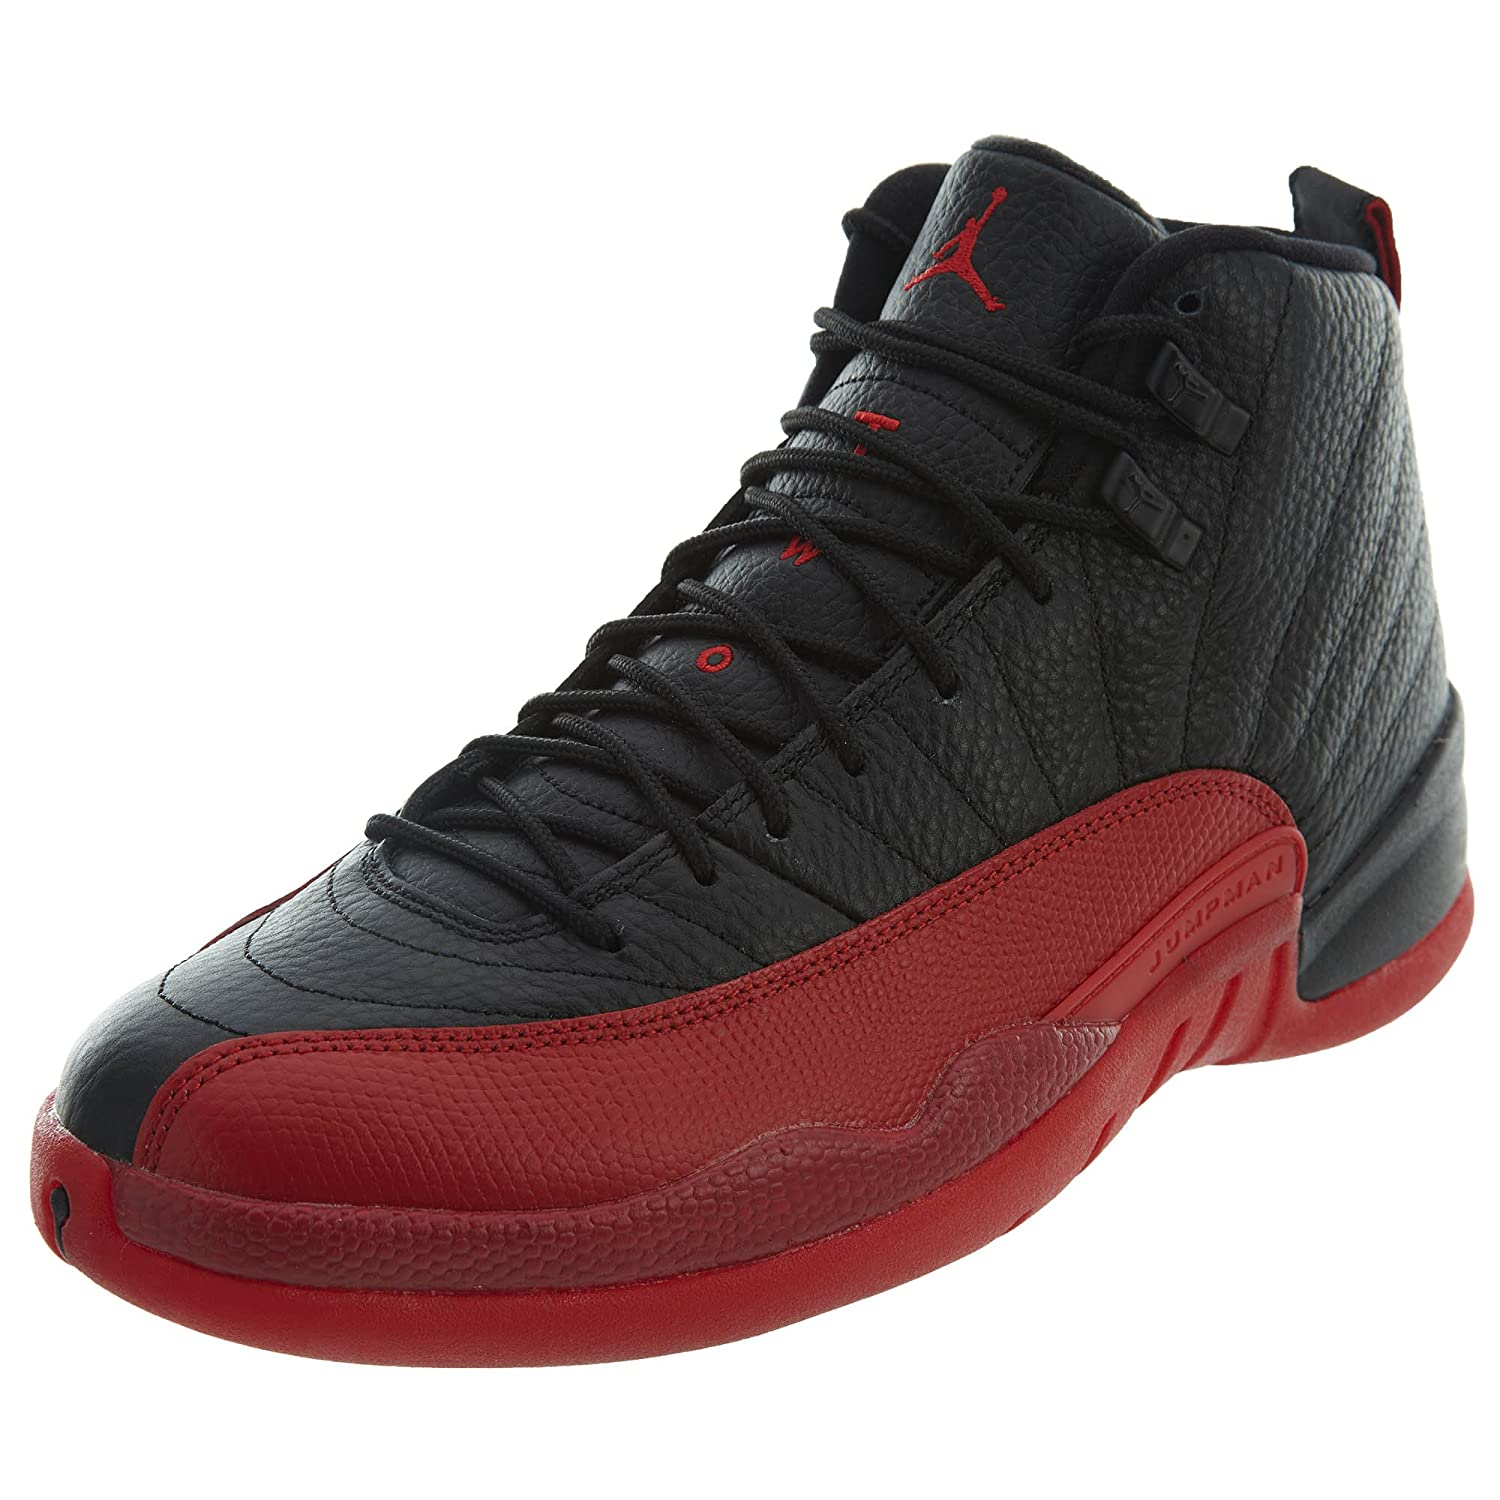 new product 58eaa a89b9 Air Jordan 12 Retro Flu Game 2016 - 130690 002 Black - Varsity Red 9 DM US